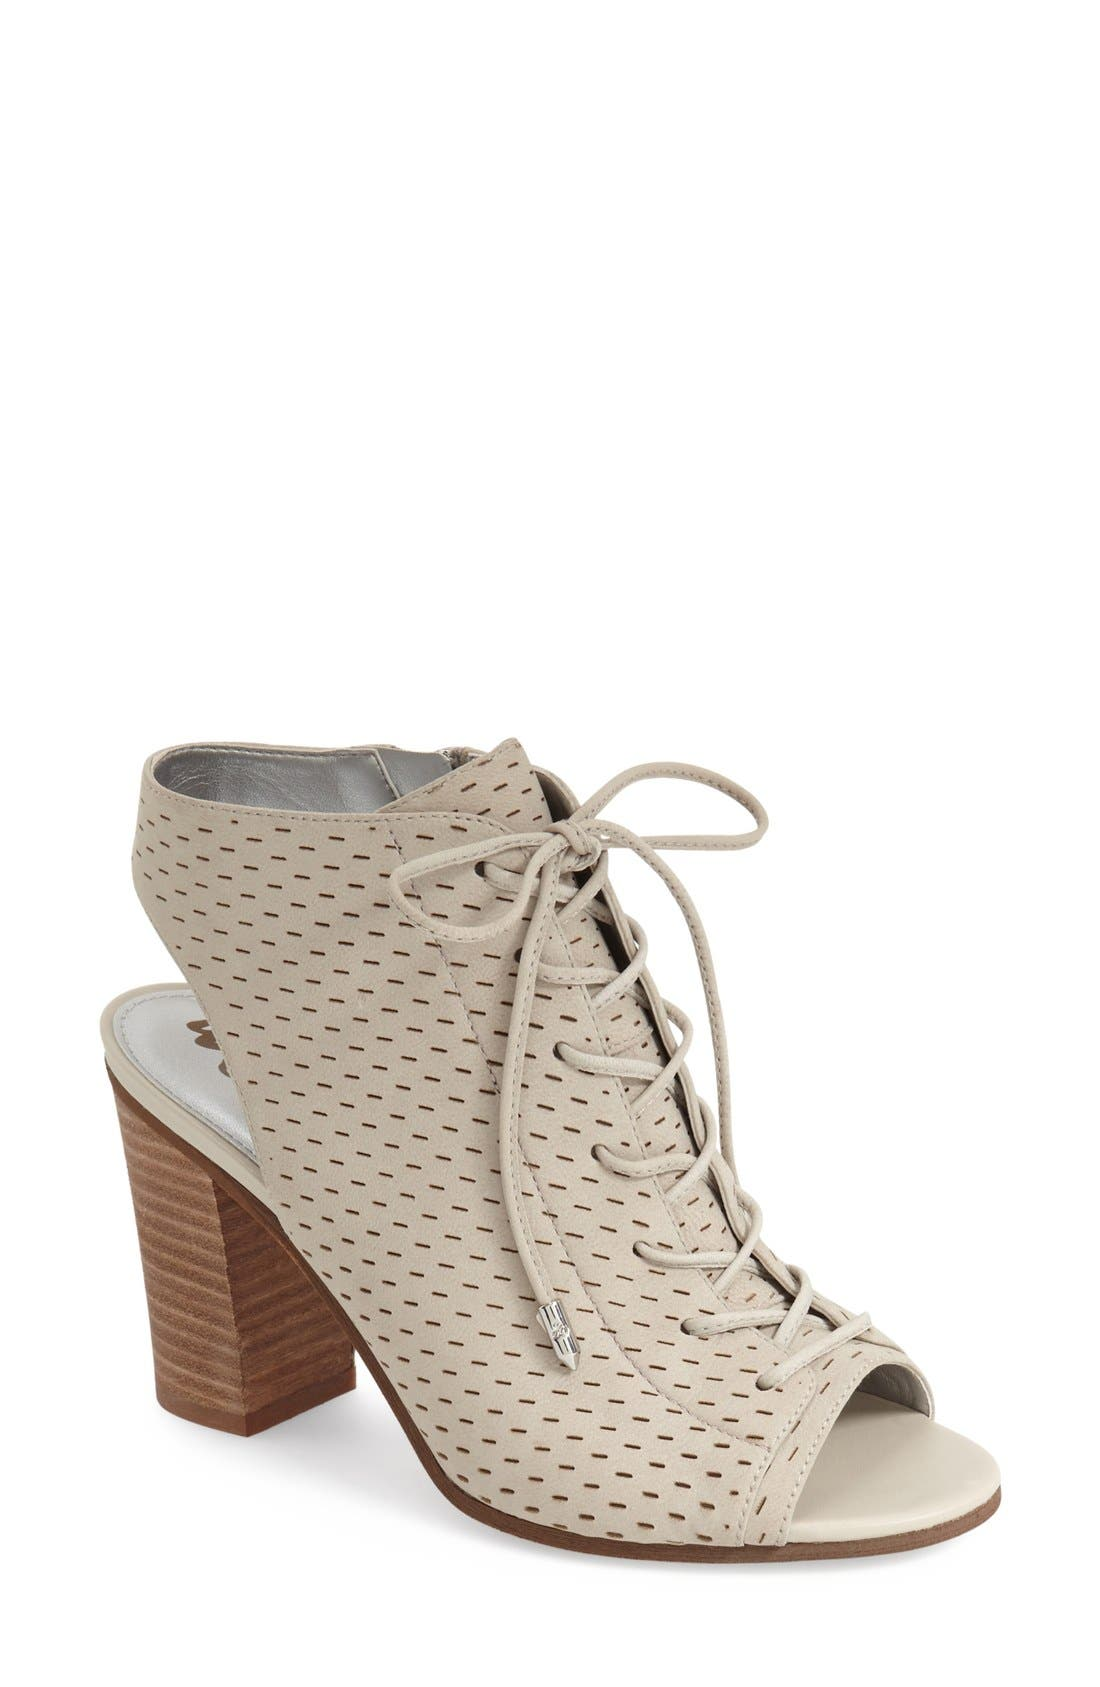 Main Image - Sam Edelman 'Ennette' Perforated Lace Up Bootie (Women)